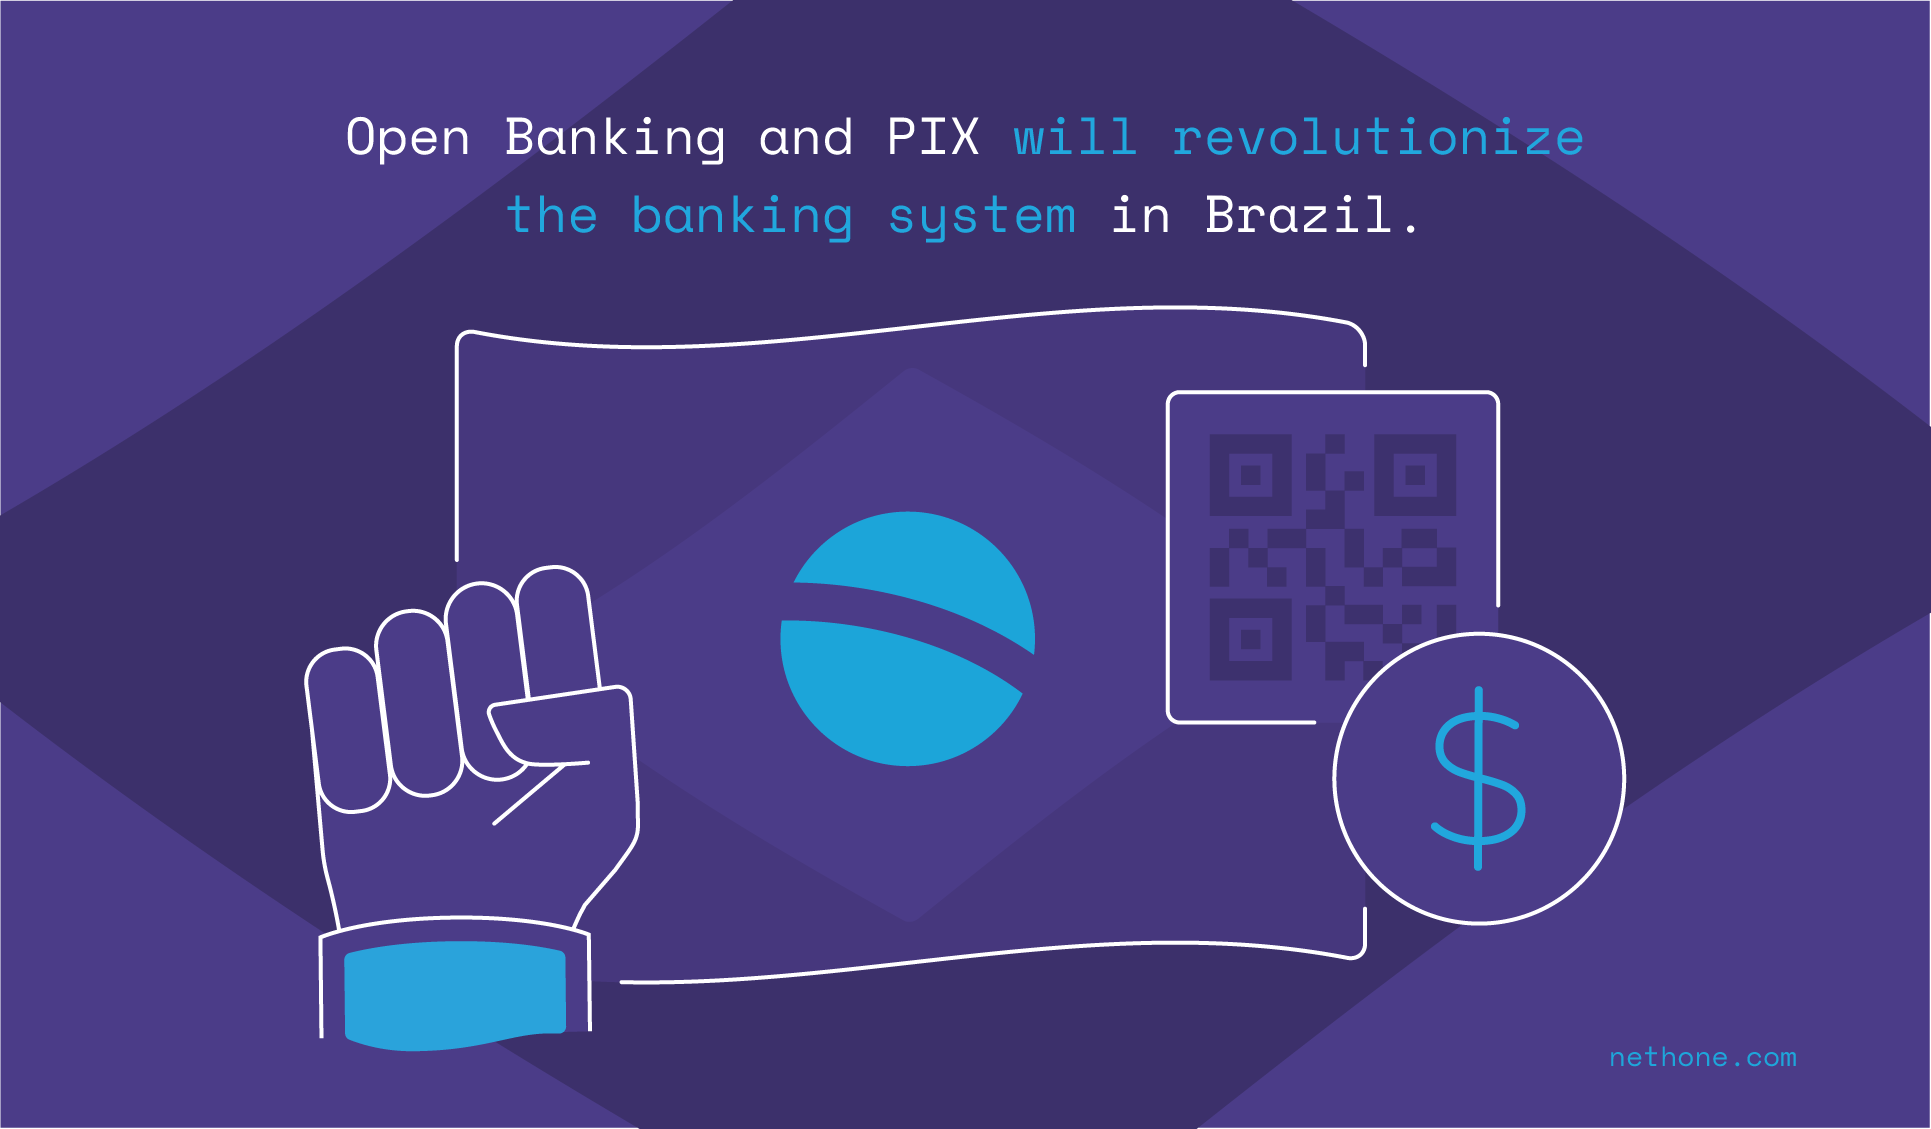 Open Banking and PIX will revolutionize the banking system in Brazil.